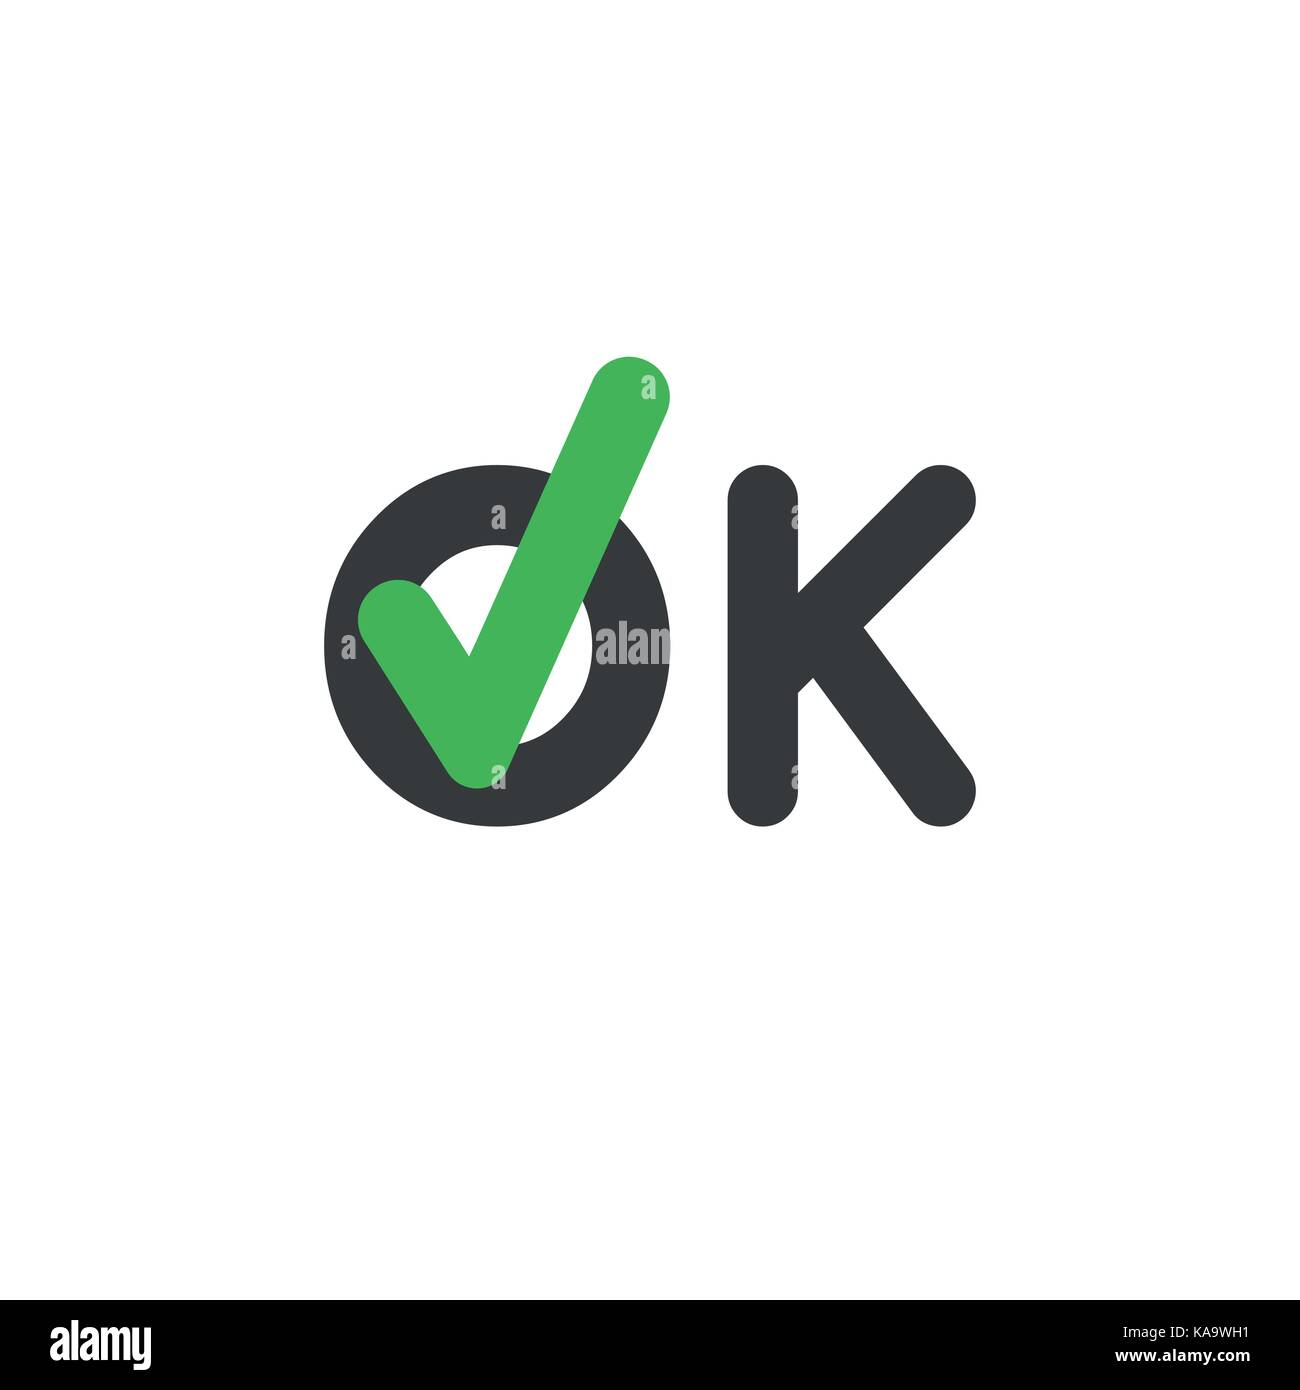 Flat Design Style Vector Illustration Concept Of Ok Word Text With